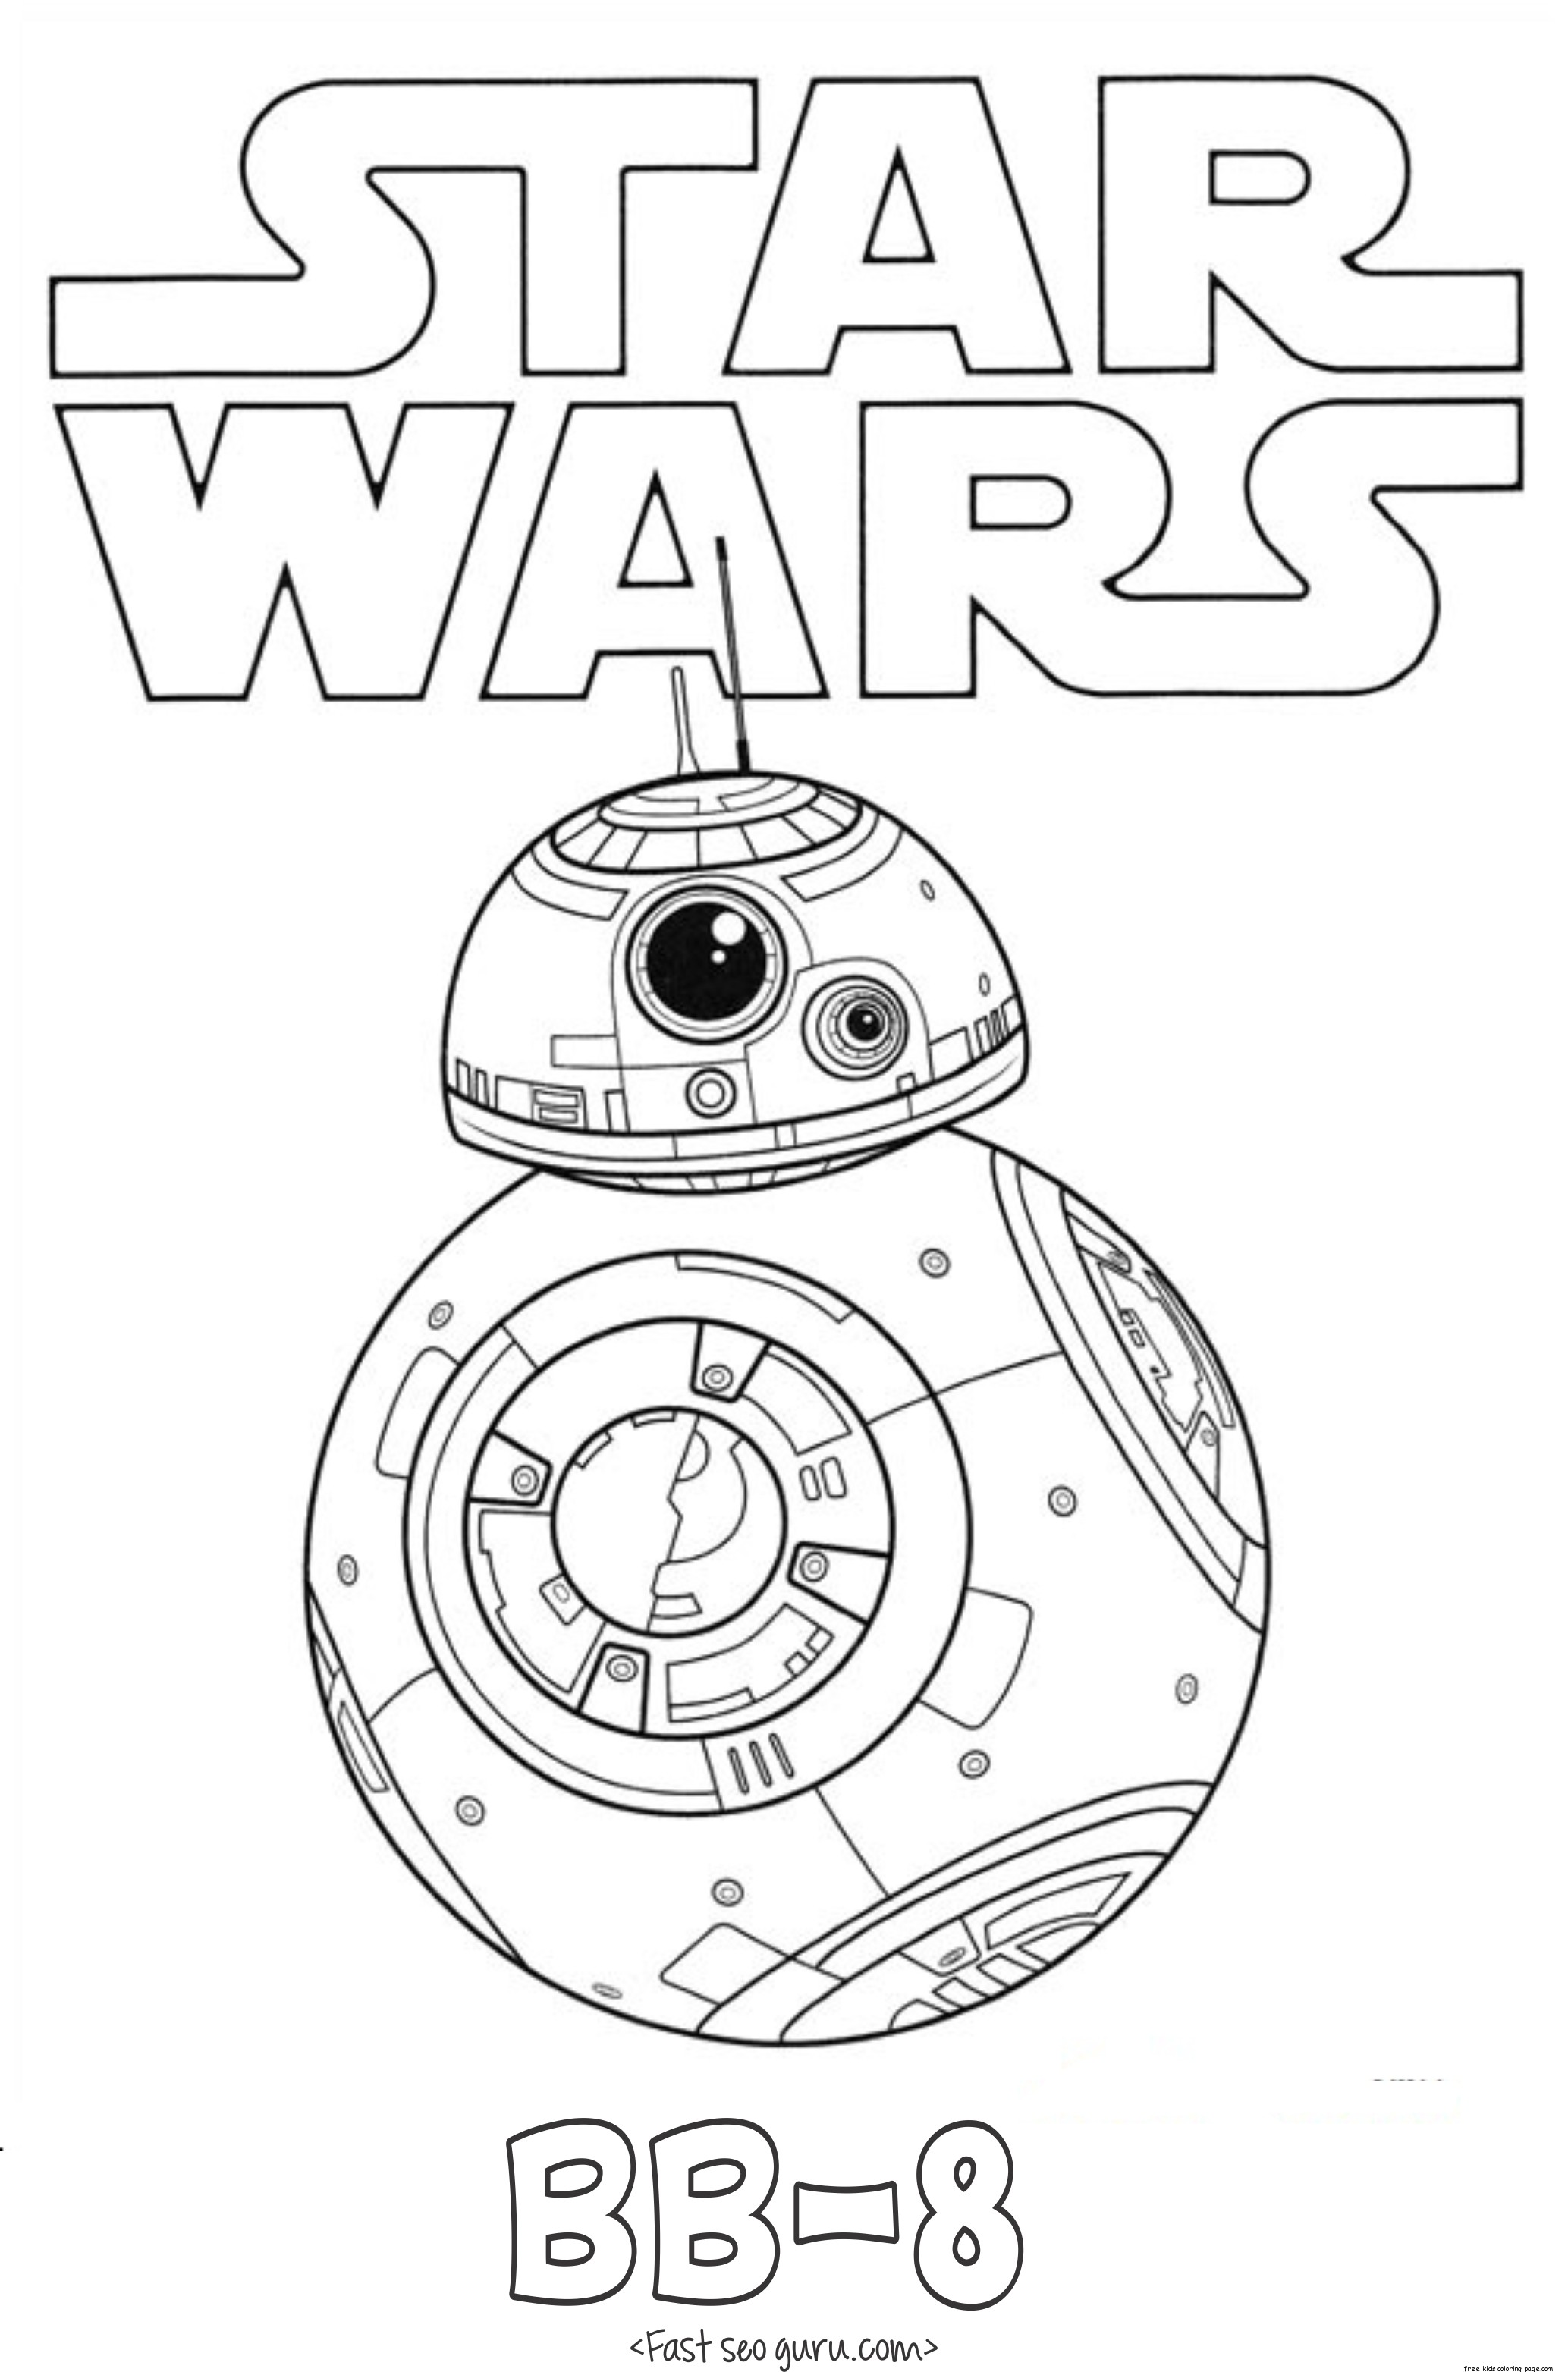 star wars coloring images star wars for children star wars kids coloring pages coloring star images wars